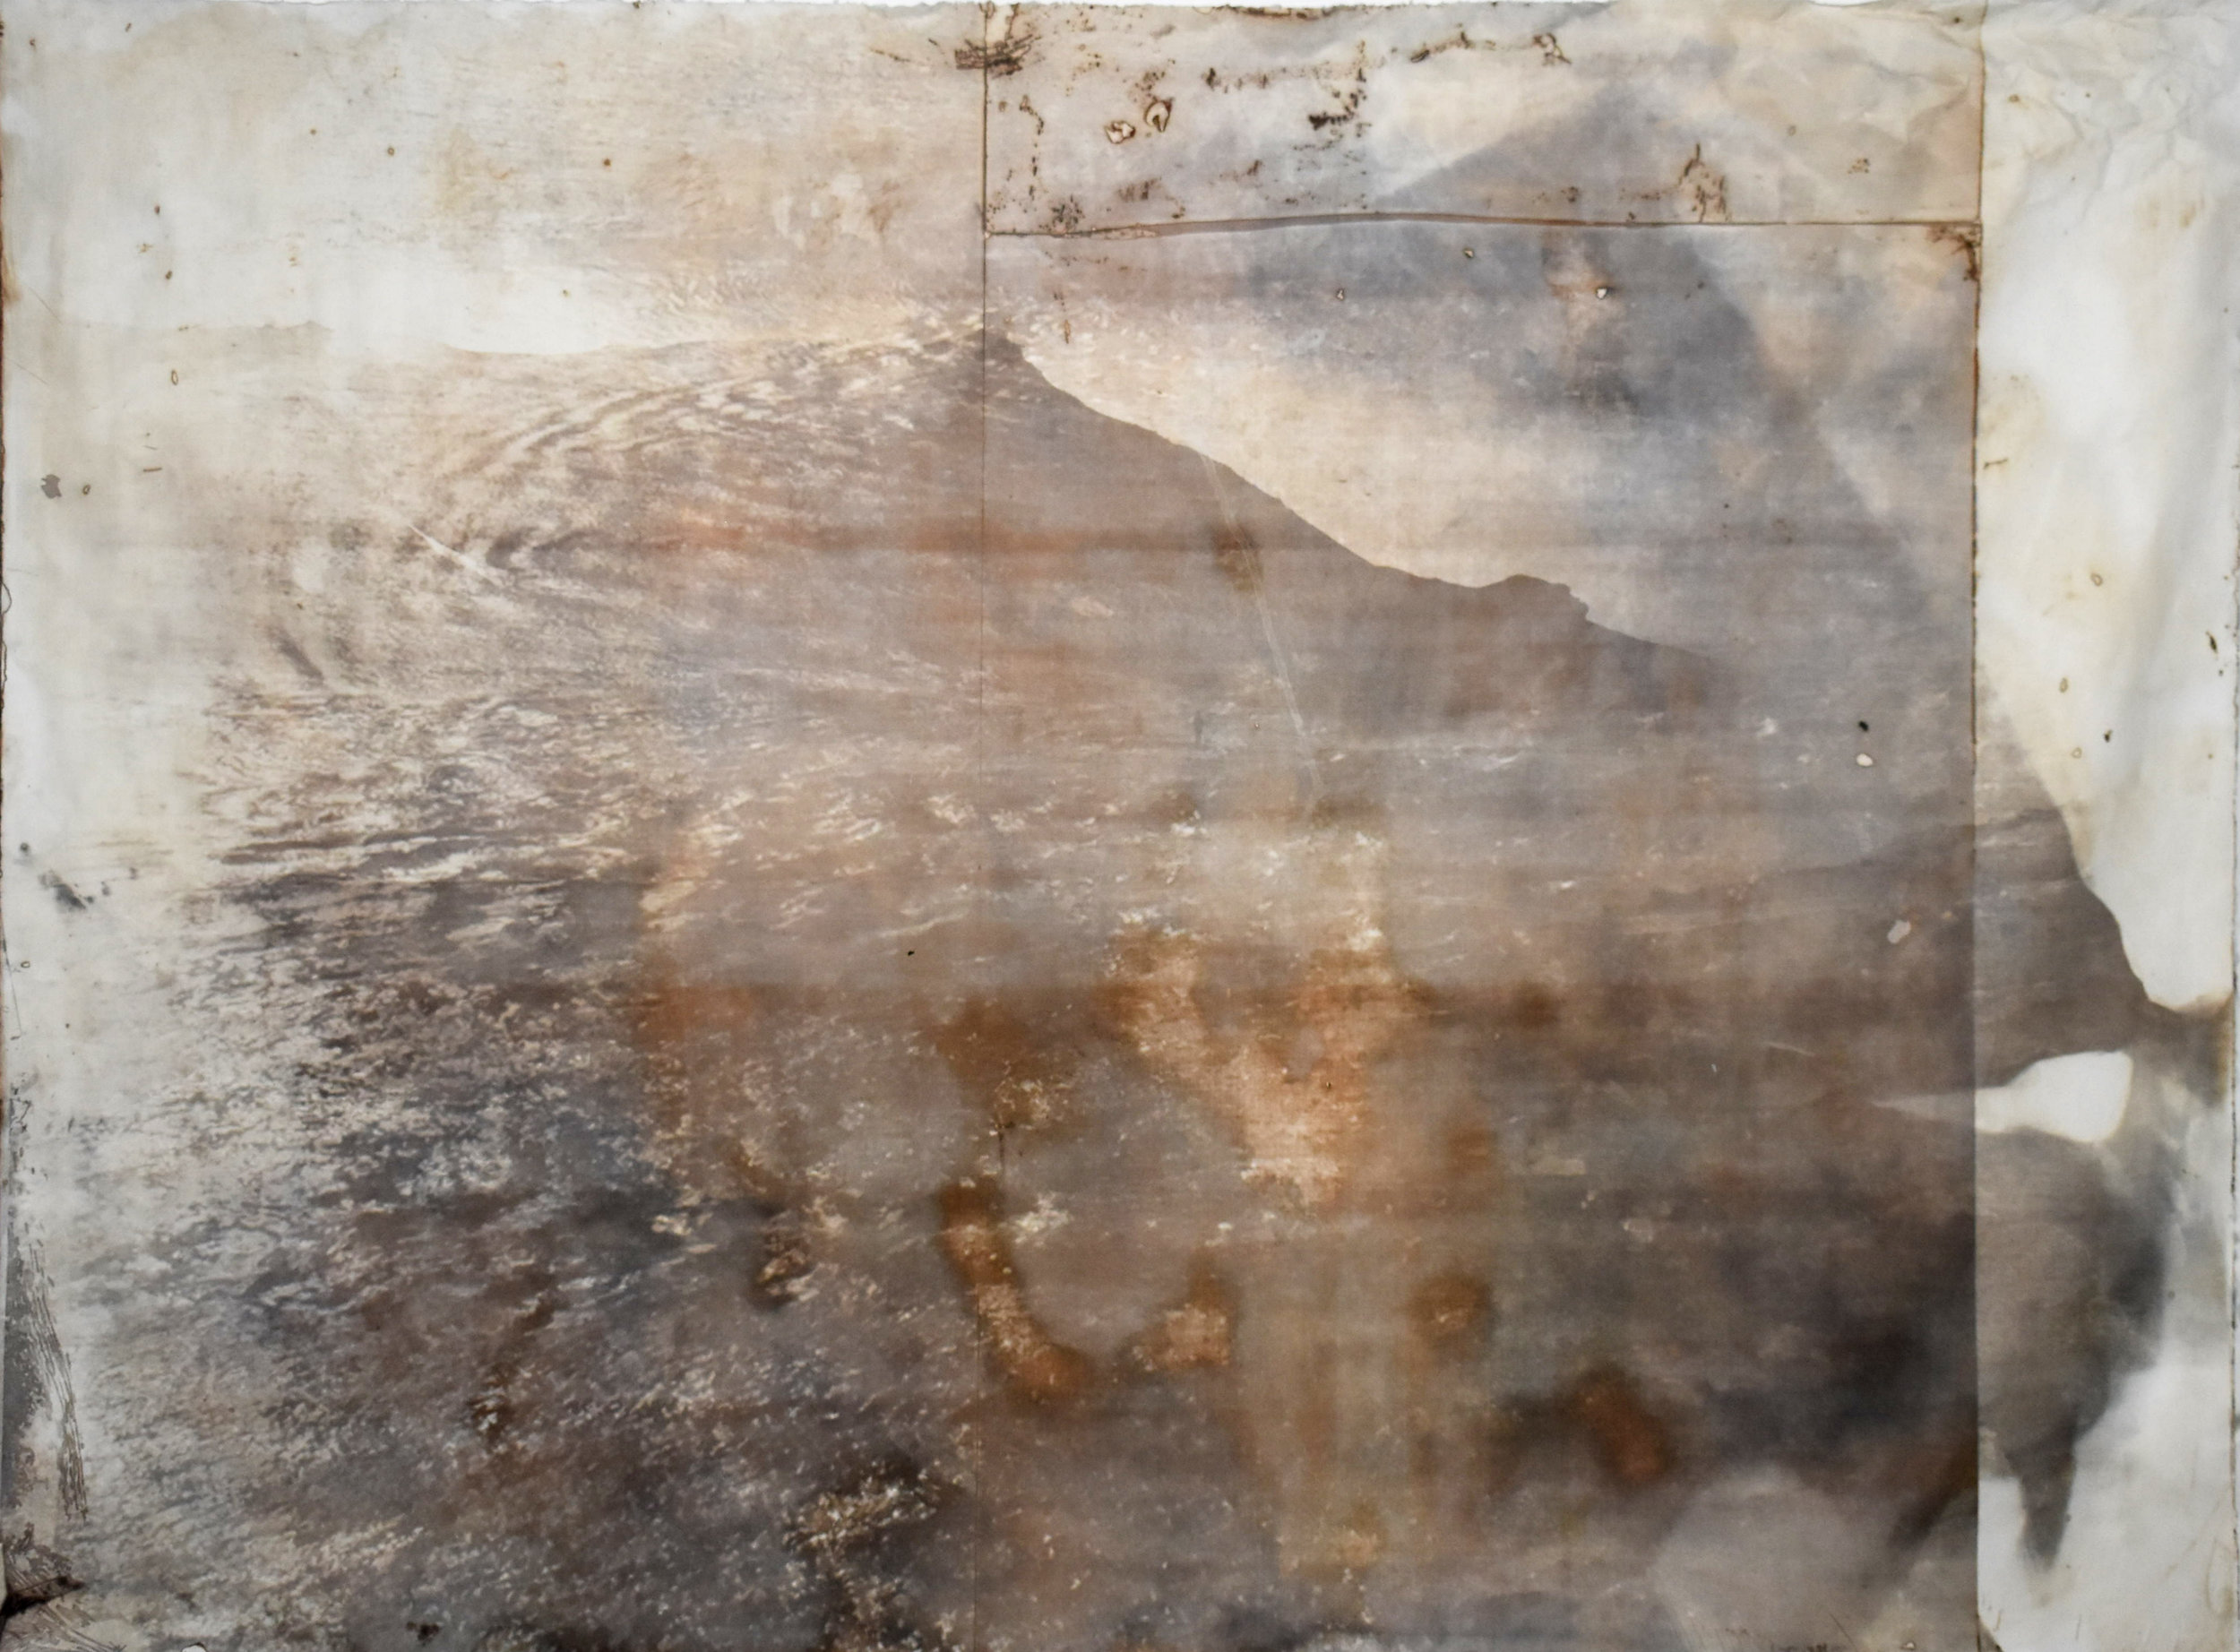 Over and Under (Whirlpool),  No. 10, 2019. Series of 9 photopolymer prints (from Prussian blue to orange oxide) printed on semi-transparent Thai paper. 137 x 109cm.. Superposition of 2 photographs taken by the artist: fumerole pits in Námafjall, Iceland and a whirlpool off the Cap Fréhel, France.